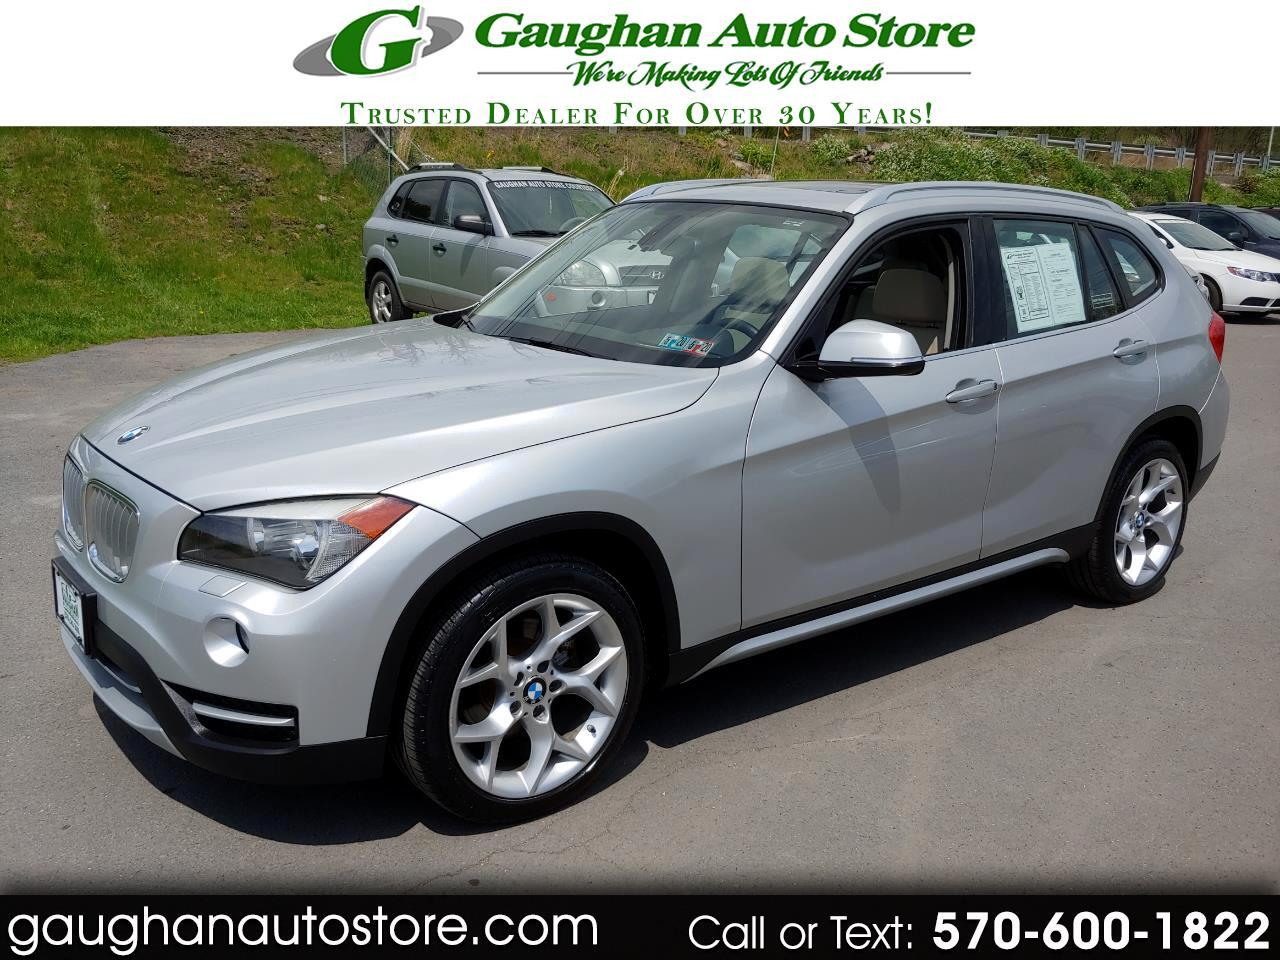 2014 BMW X1 AWD XDRIVE 28i  LEATHER/PANO ROOF